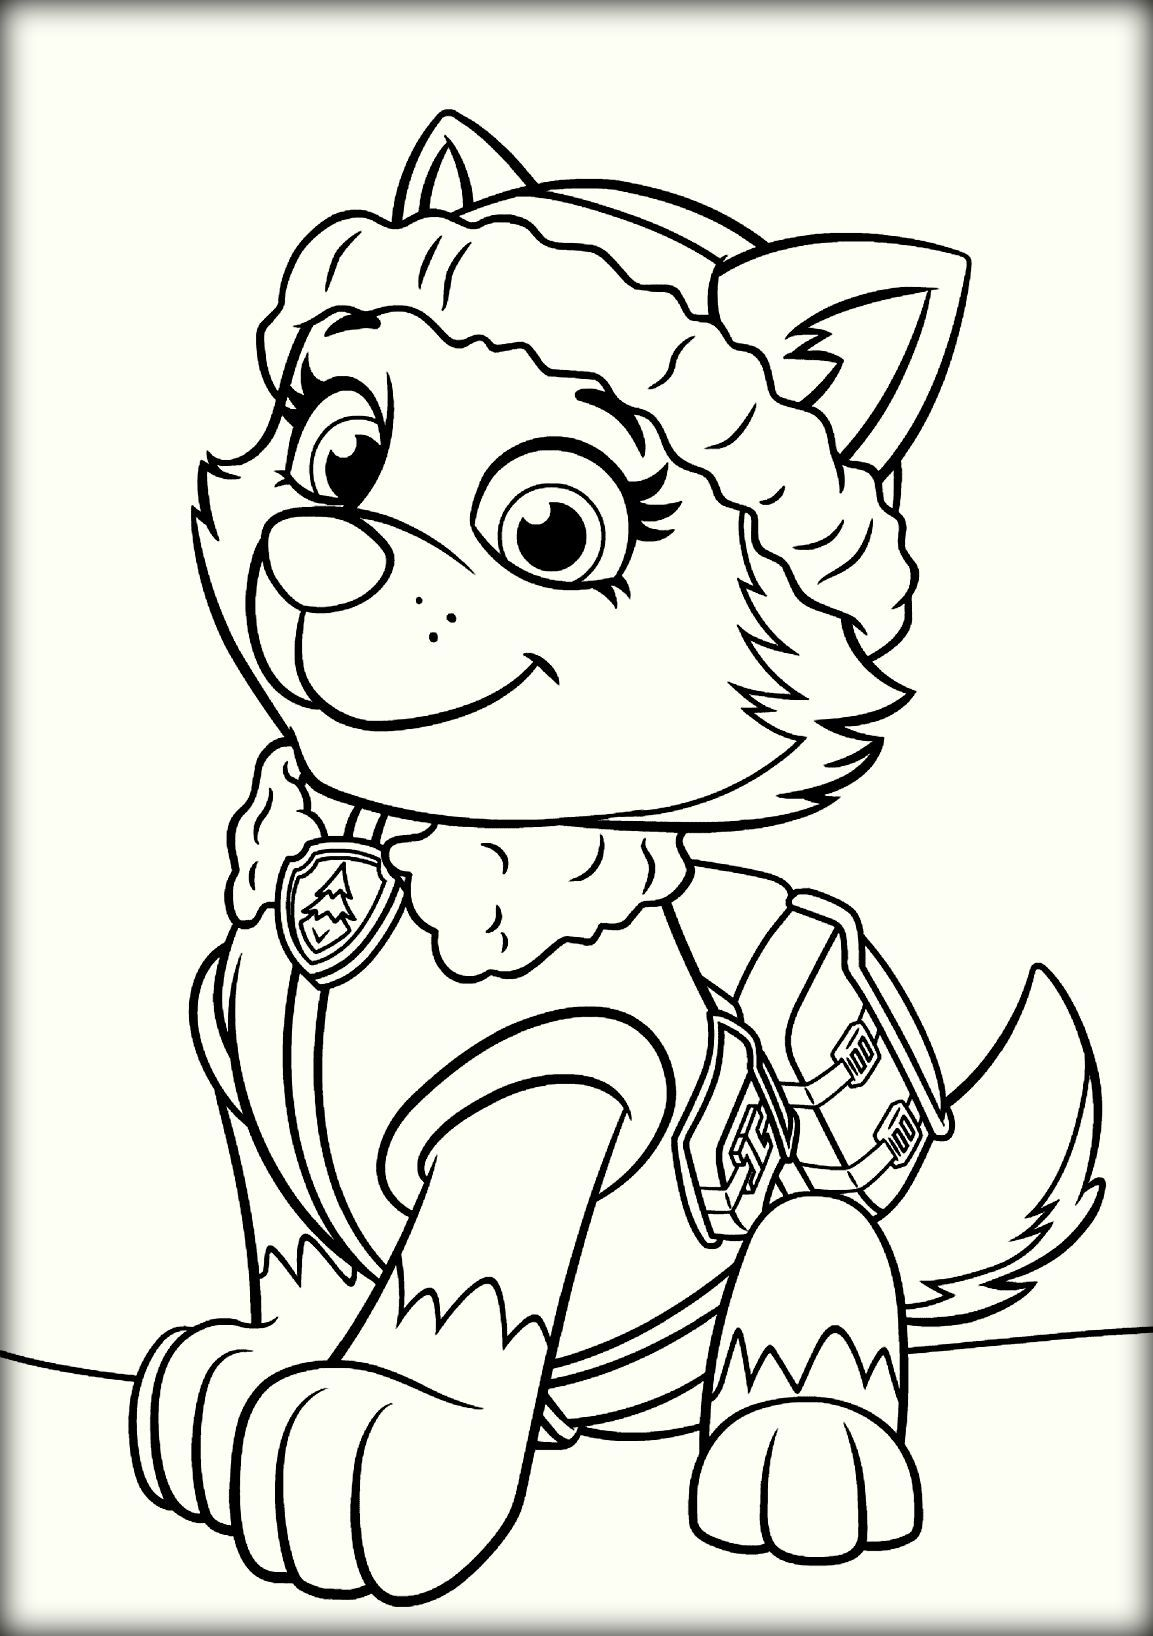 Paw patrol everest coloring pages